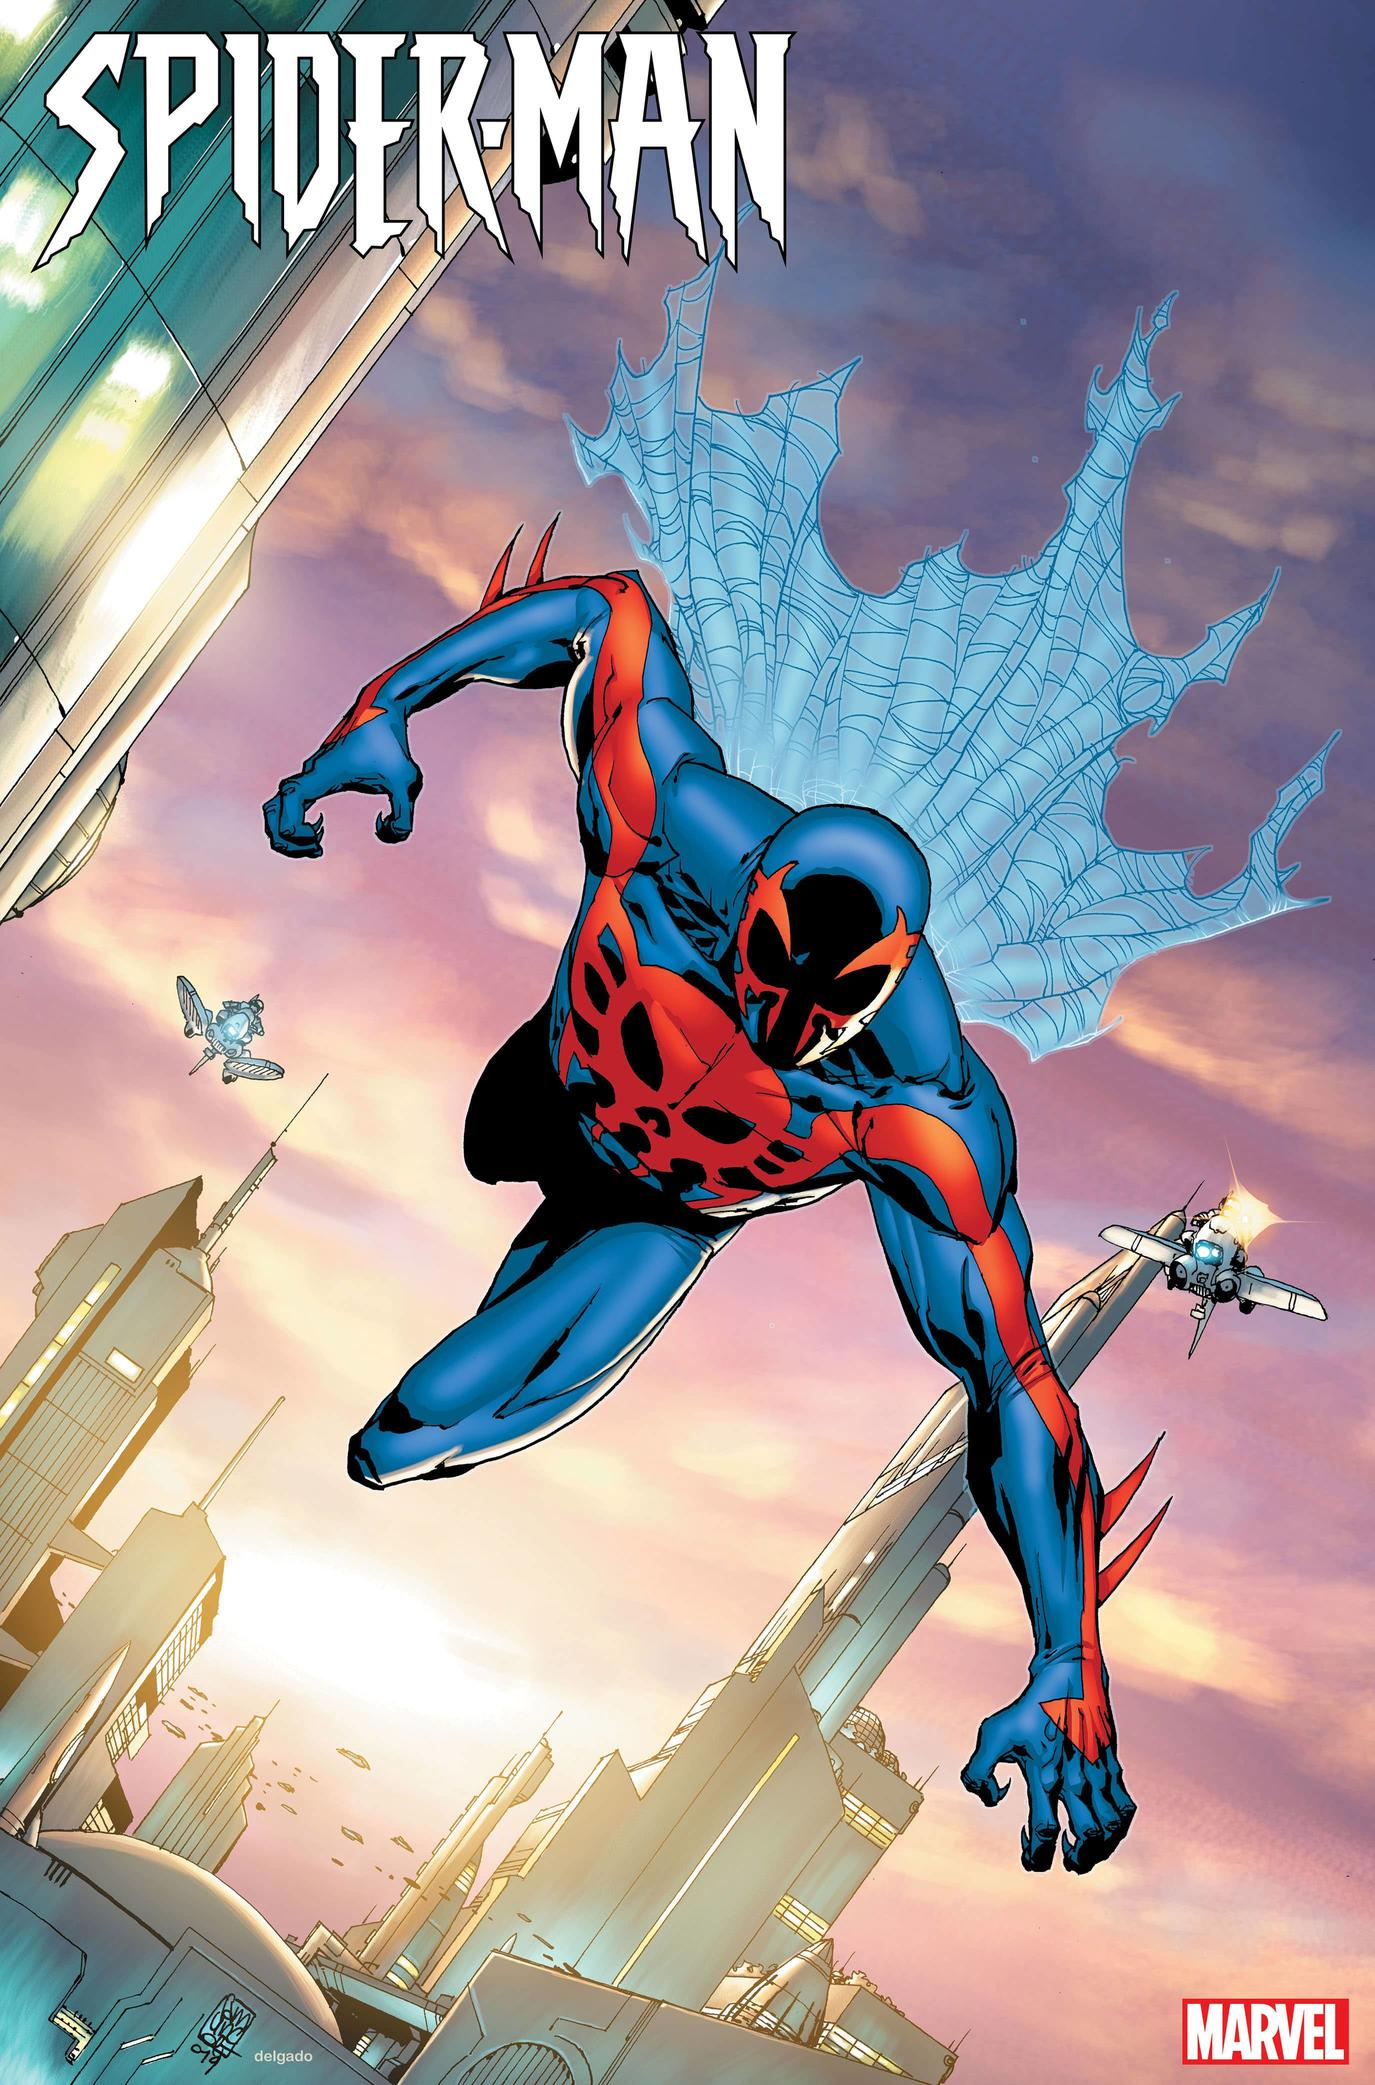 Spider-Man 2099 variant cover